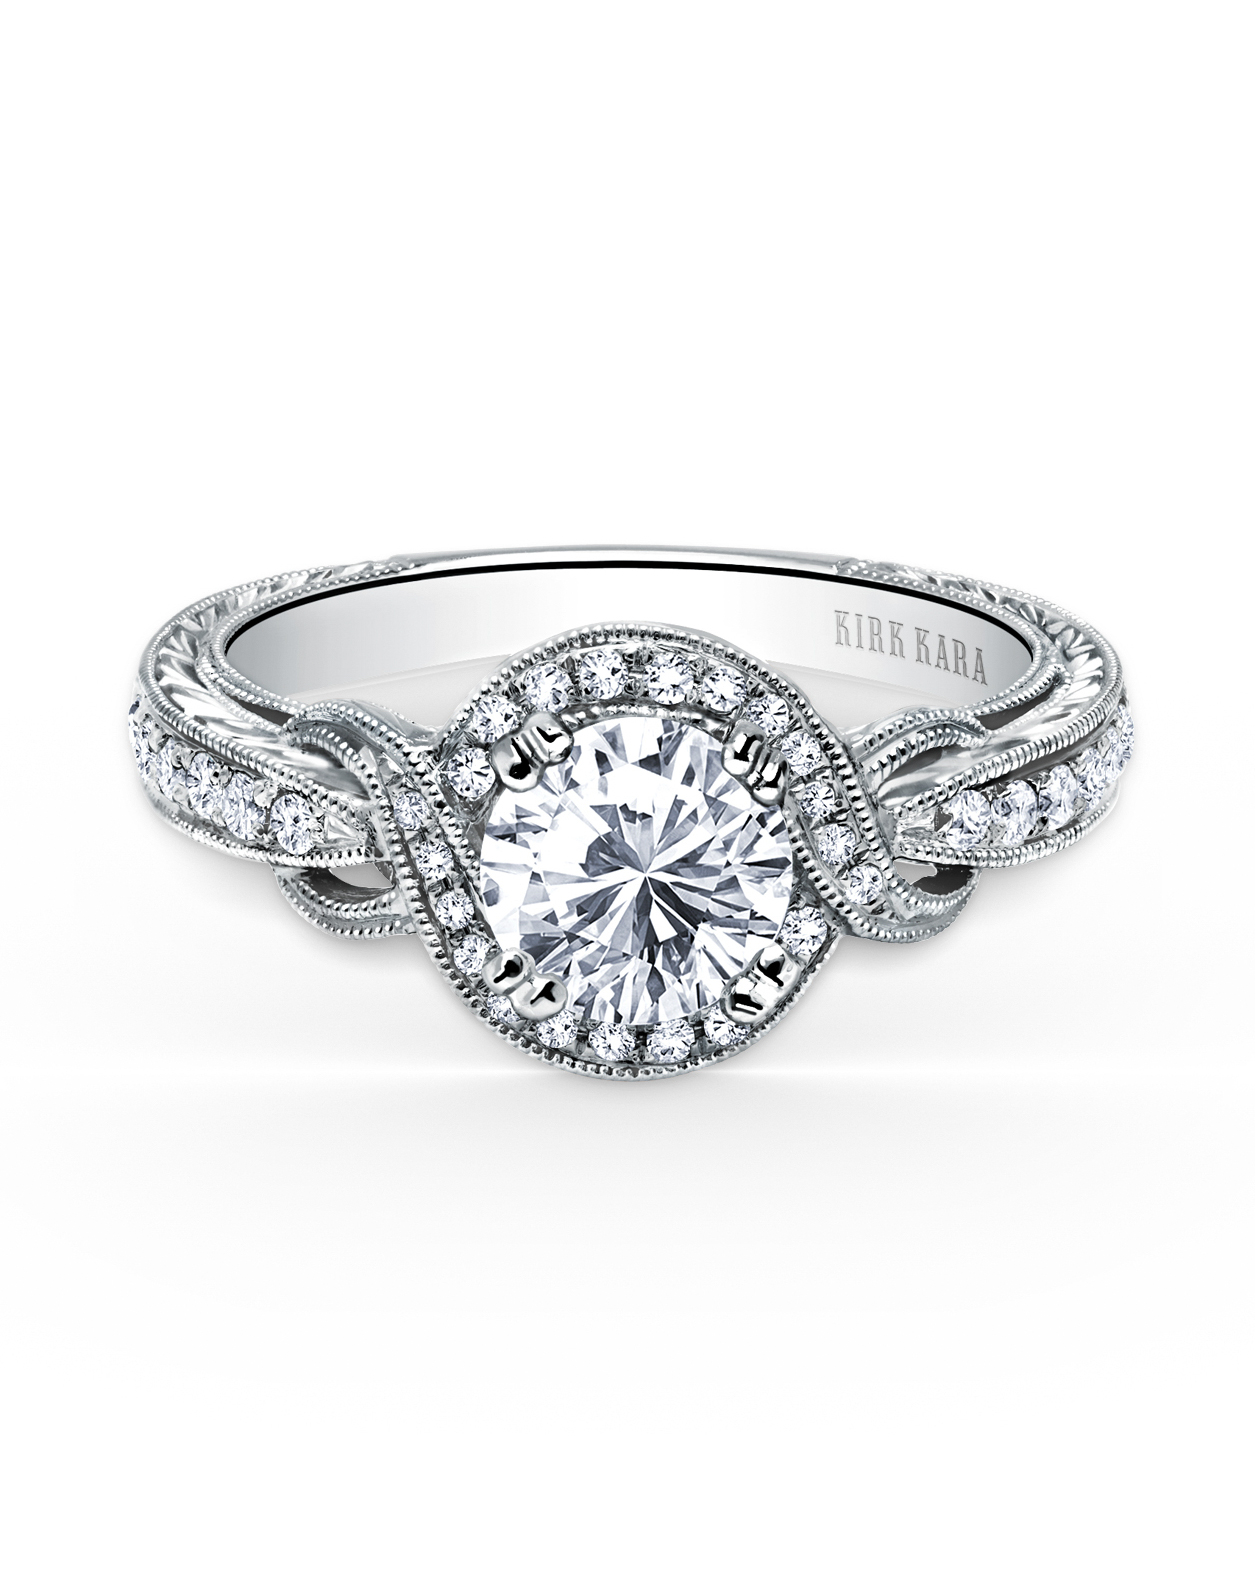 kirk-kara-white-gold-round-cut-engagement-ring-two-0816.jpg